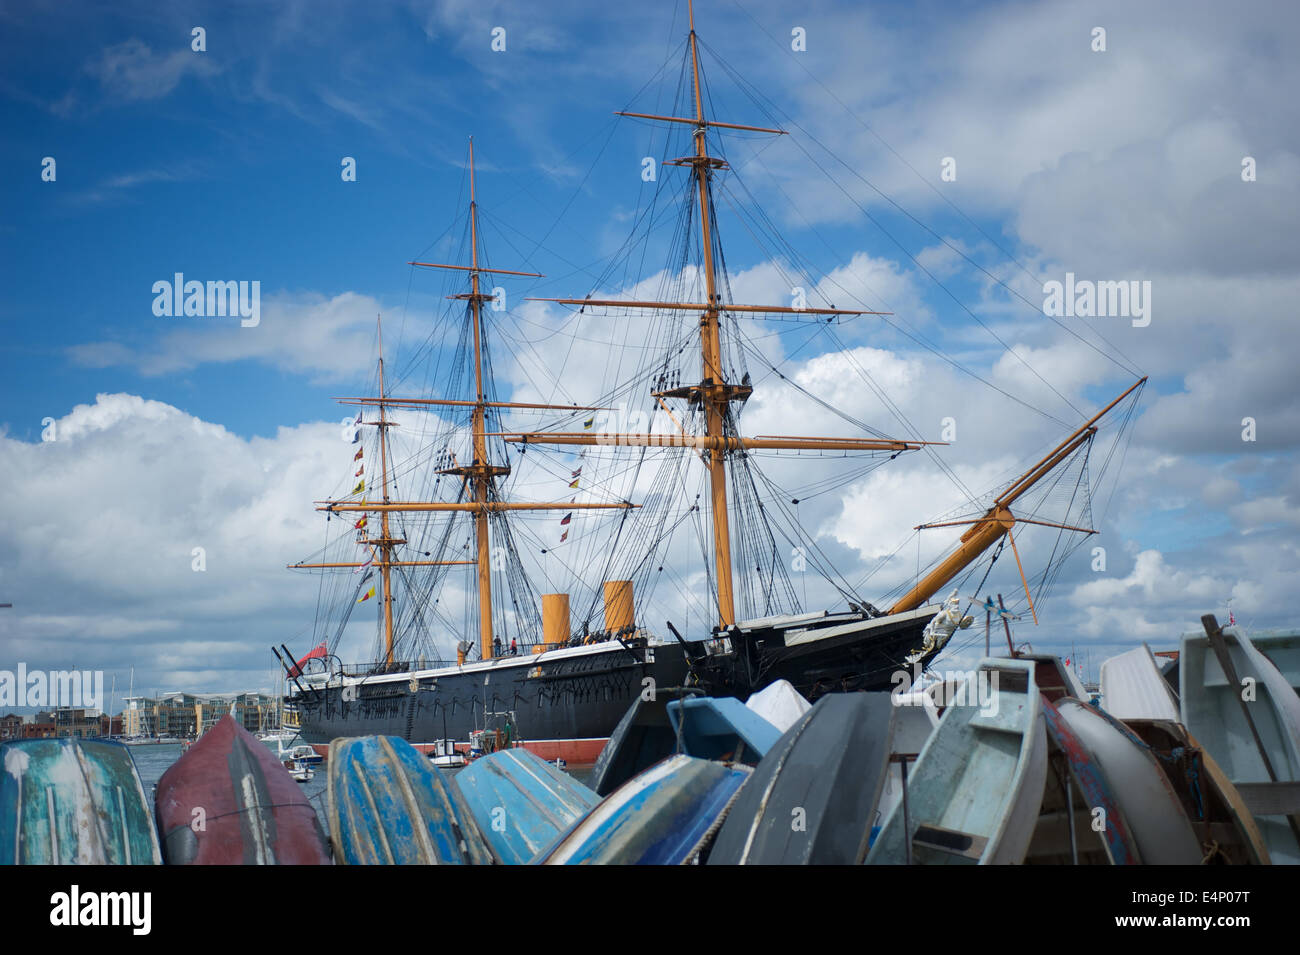 HMS Warrior, Portsmouth docks. Stock Photo